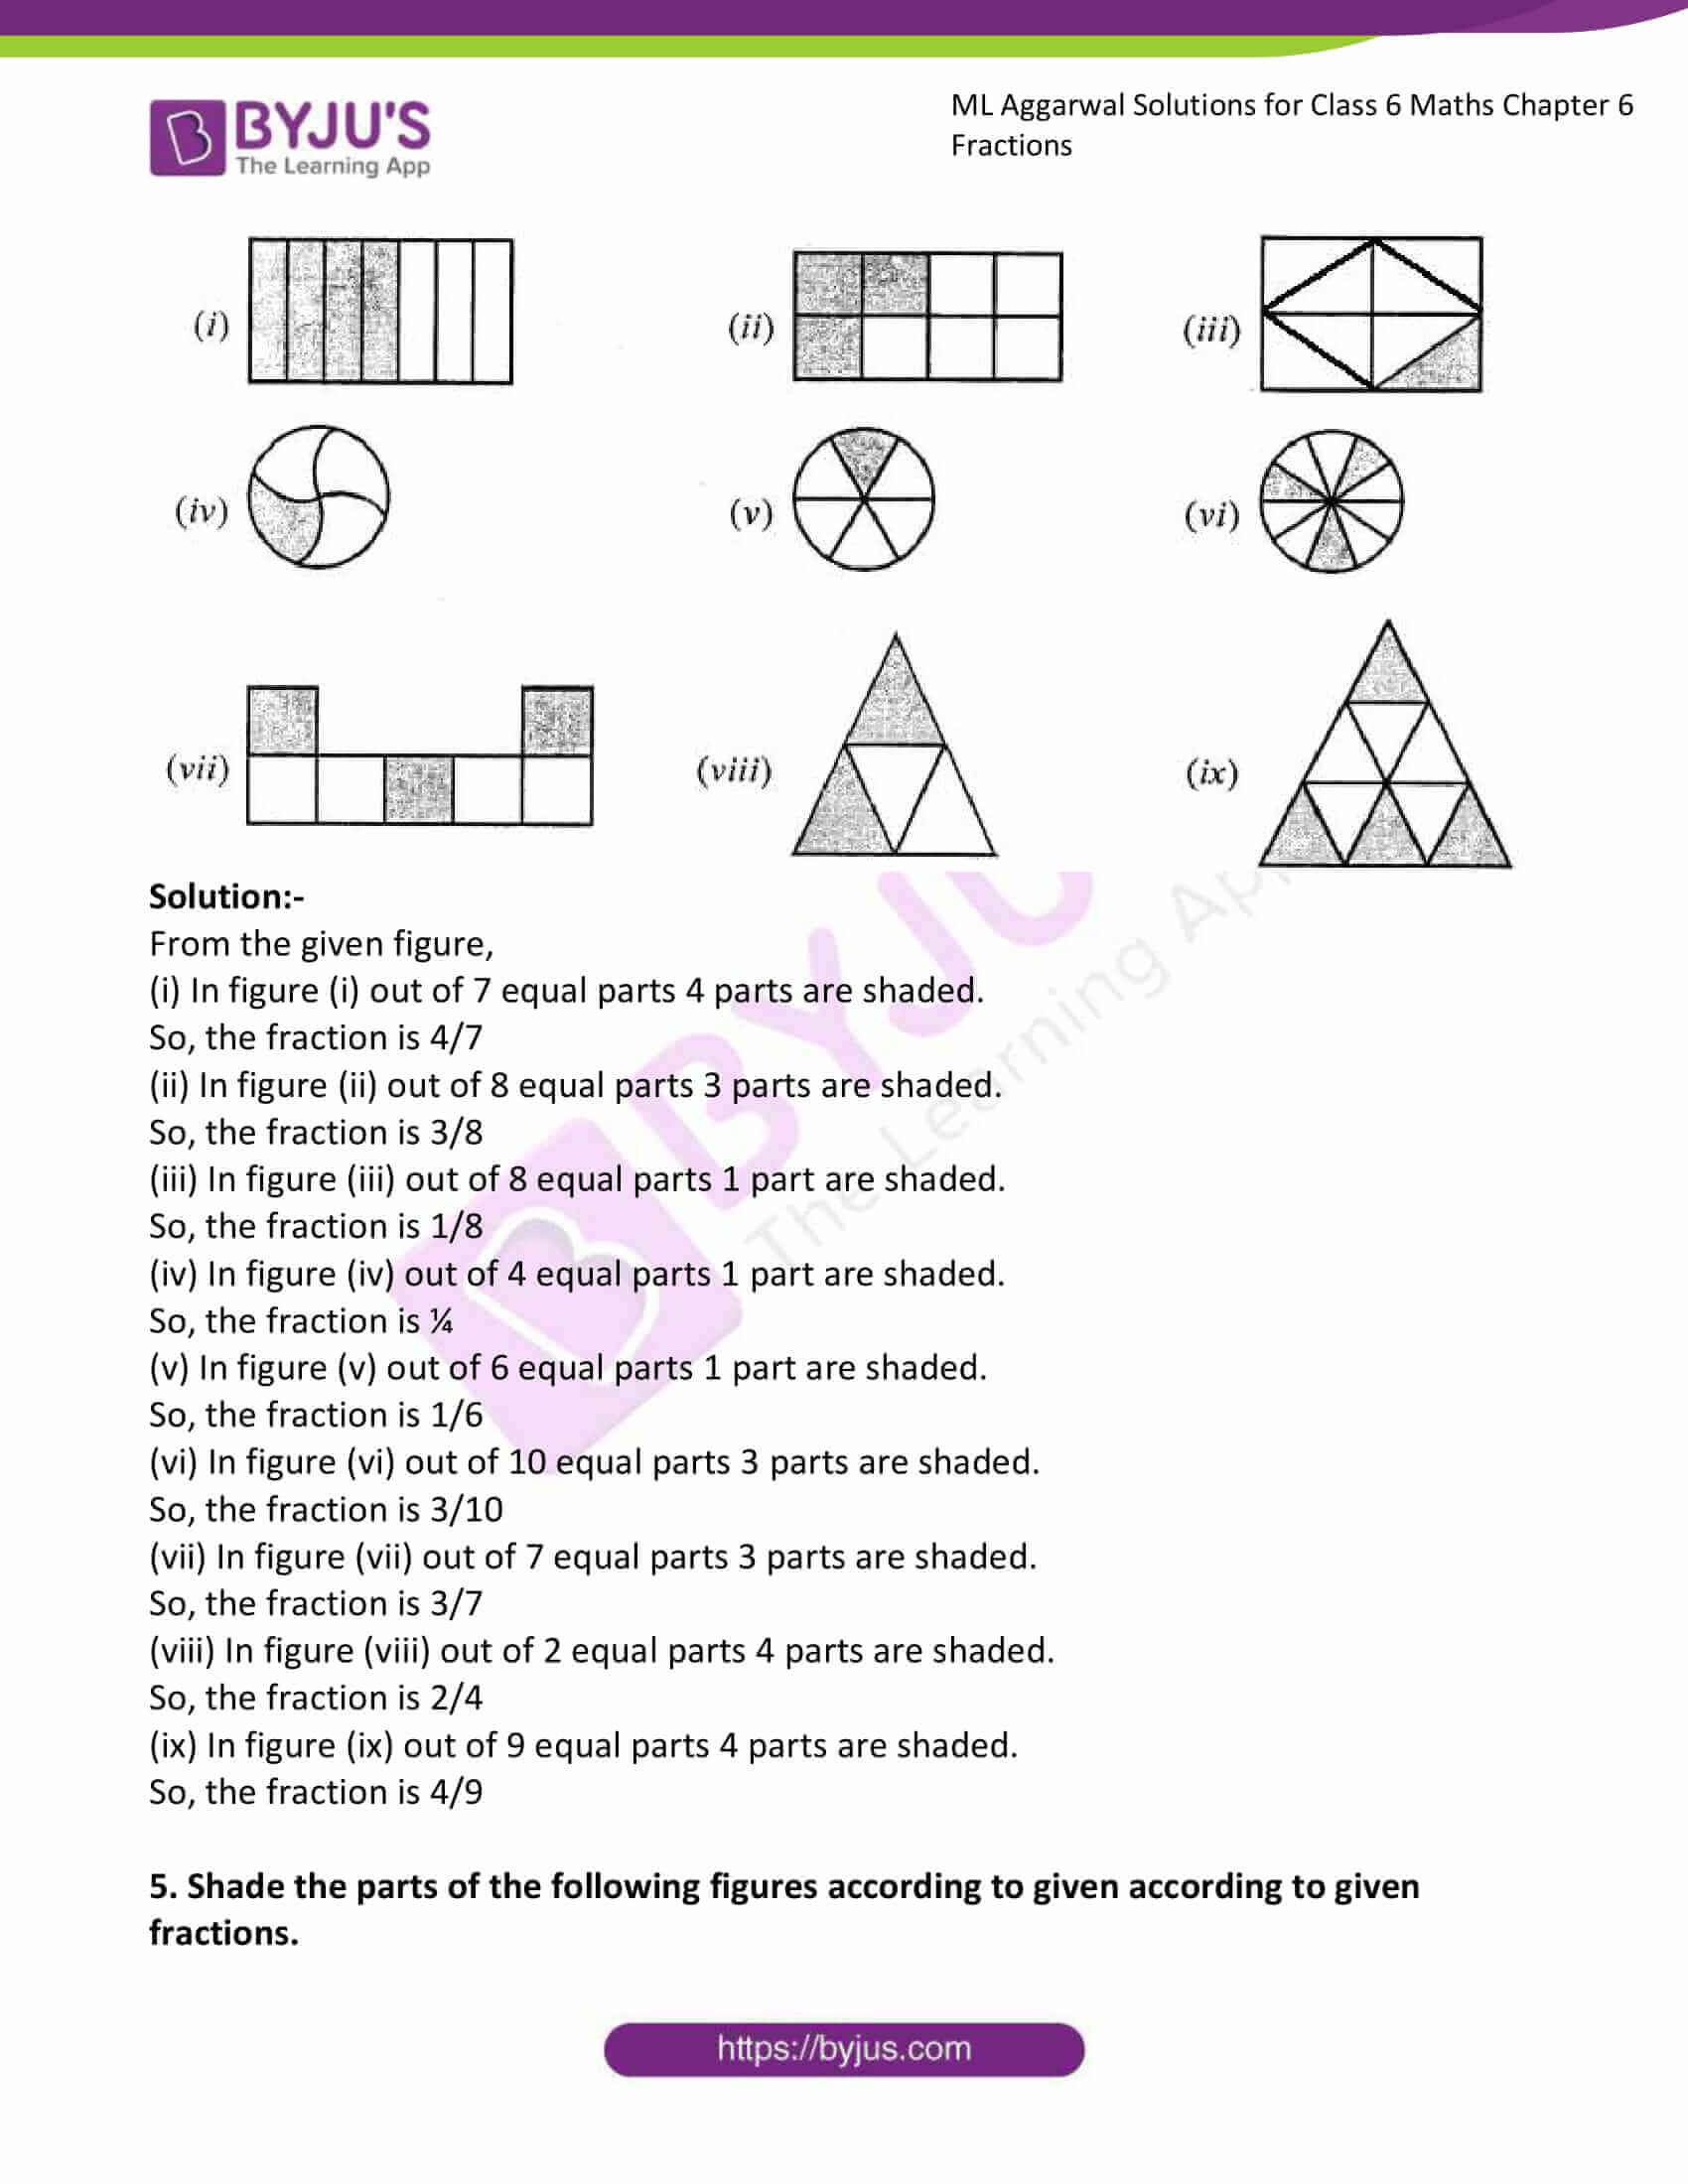 ml aggarwal solutions for class 6 maths chapter 6 2